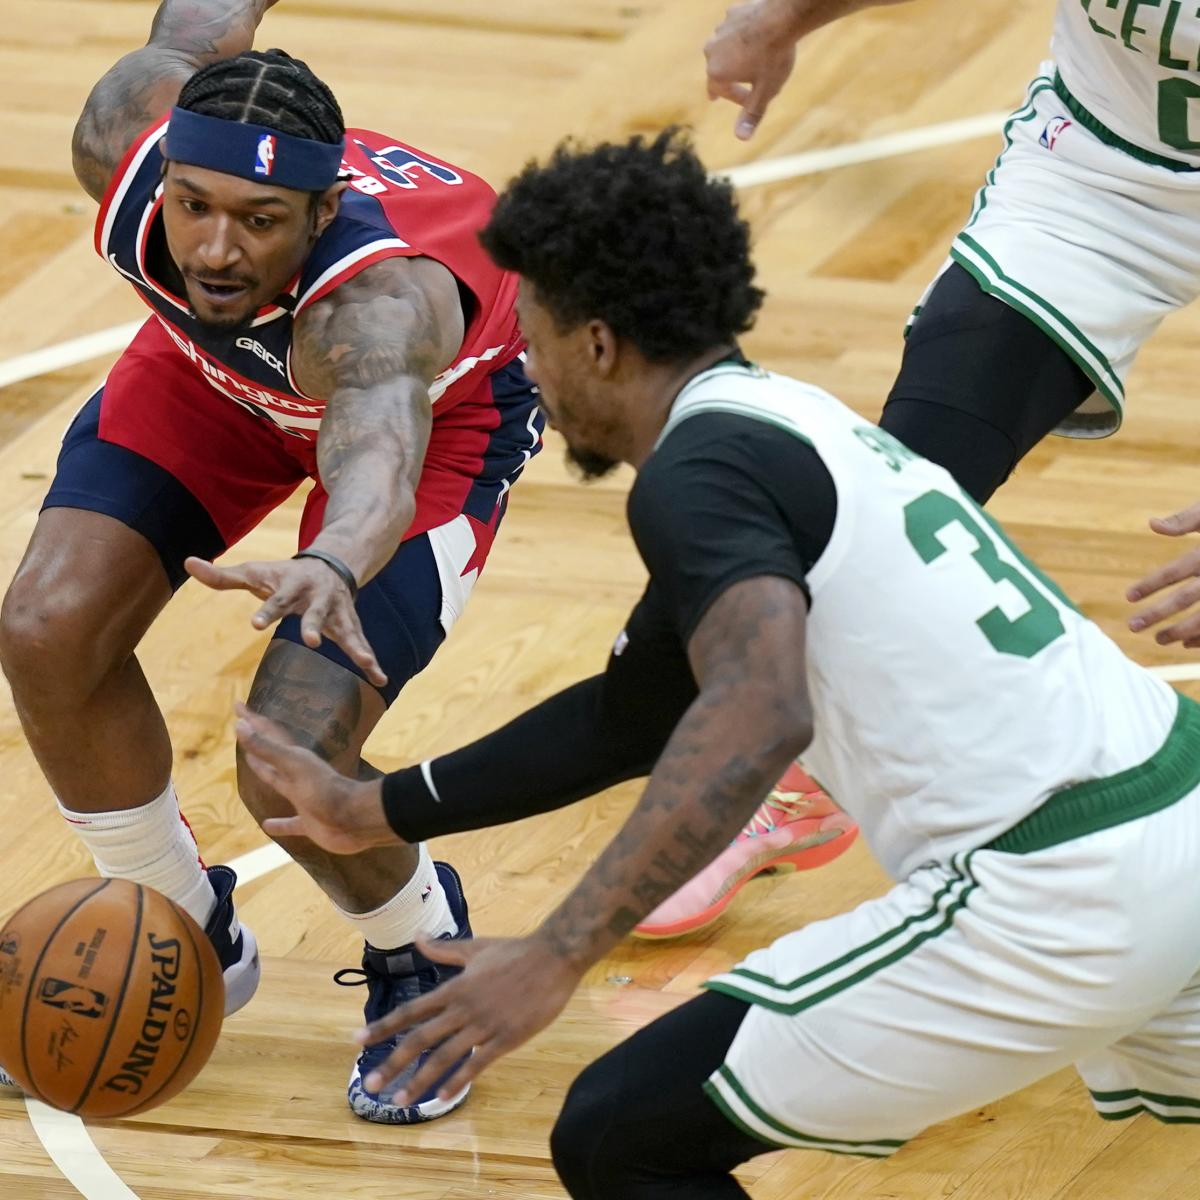 Bradley Beal Says Wizards'Can't Guard a Parked Car' After Loss to Celtics thumbnail